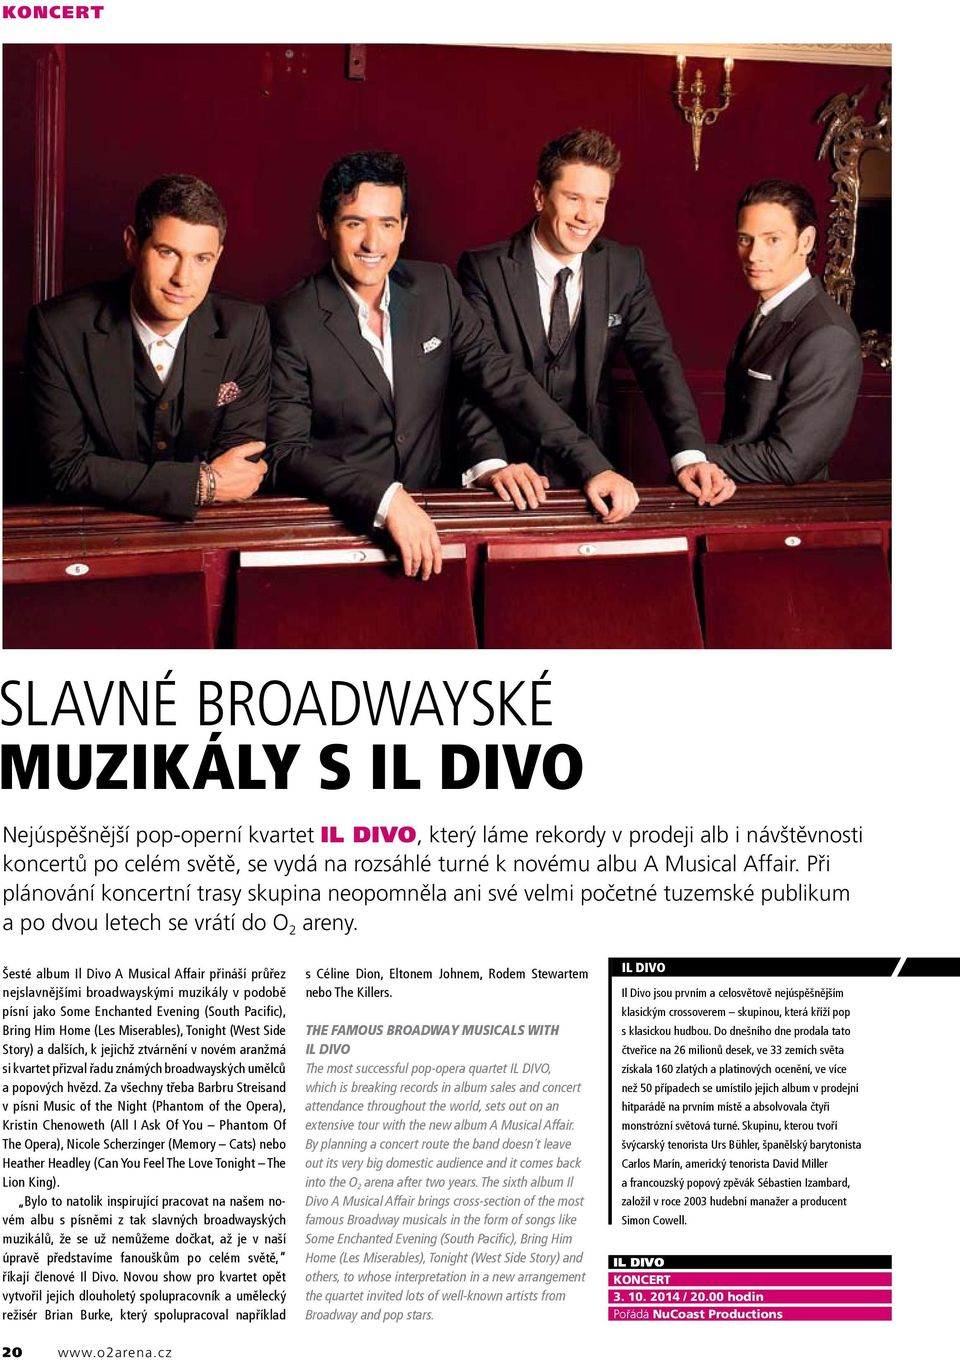 Šesté album Il Divo A Musical Affair přináší průřez nejslavnějšími broadwayskými muzikály v podobě písní jako Some Enchanted Evening (South Pacific), Bring Him Home (Les Miserables), Tonight (West